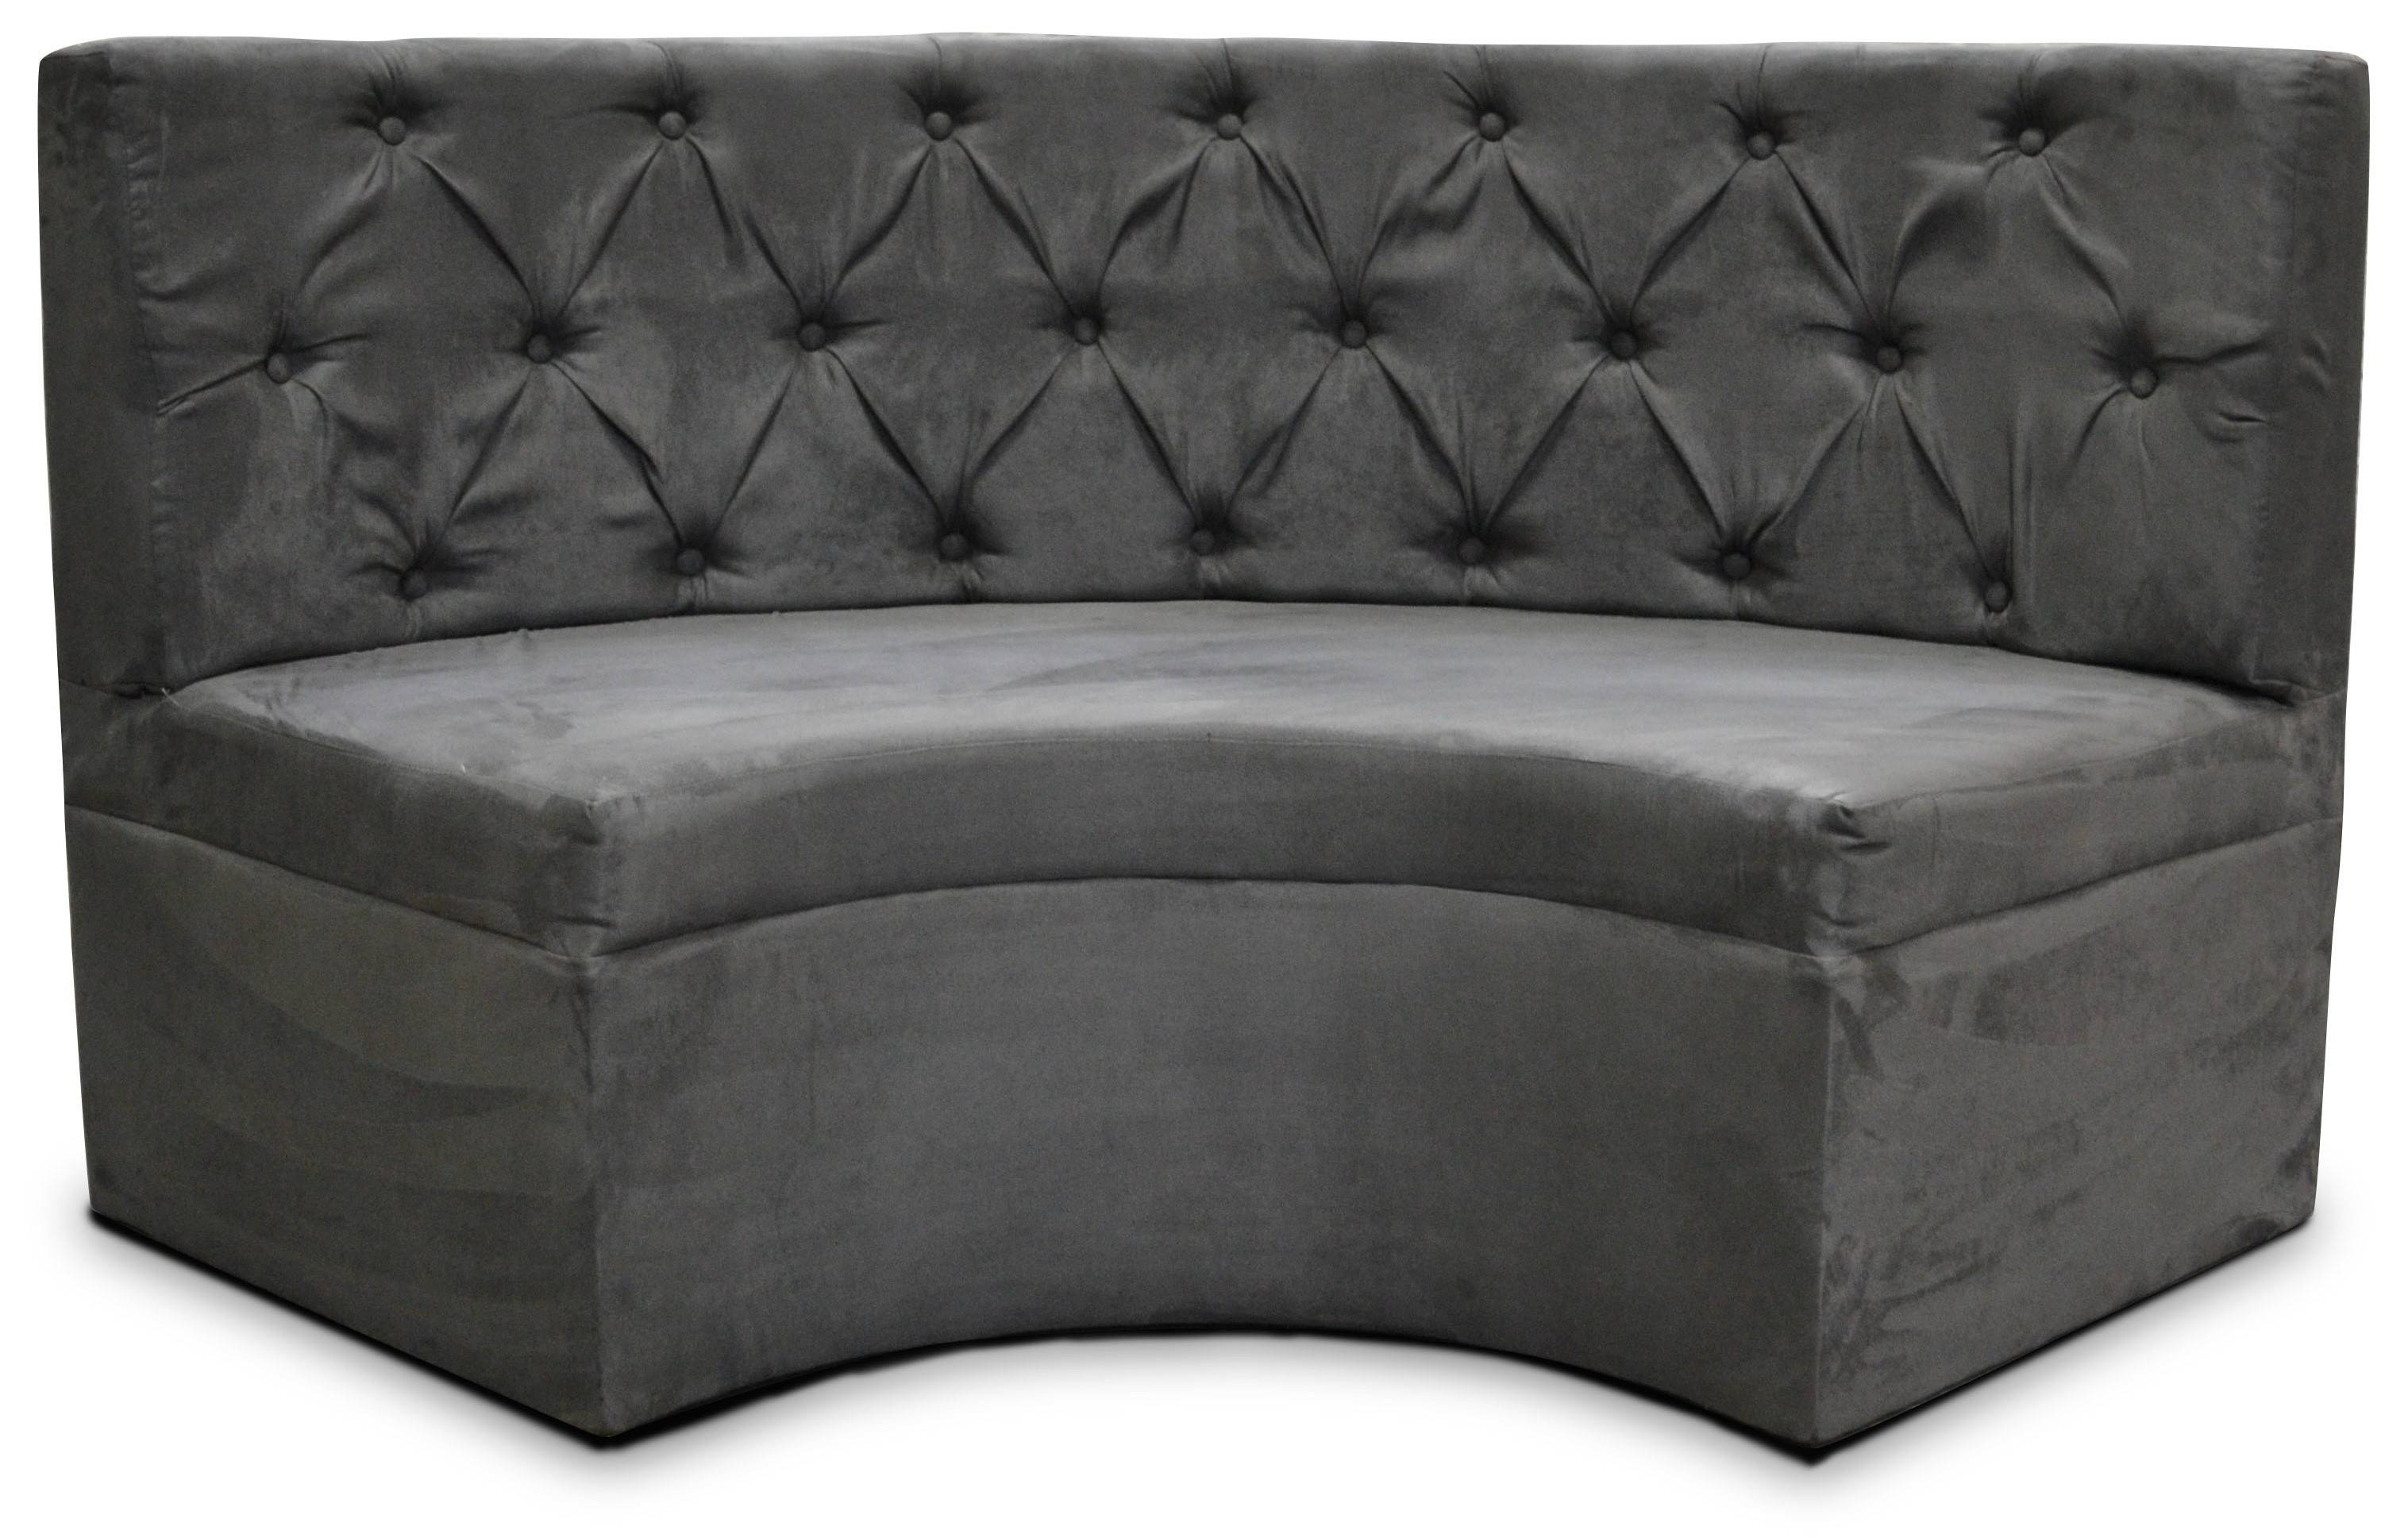 Furniture: Sectional Sofa Dimensions Red Leather Curved Couch With with Small Curved Sectional Sofas (Image 8 of 15)